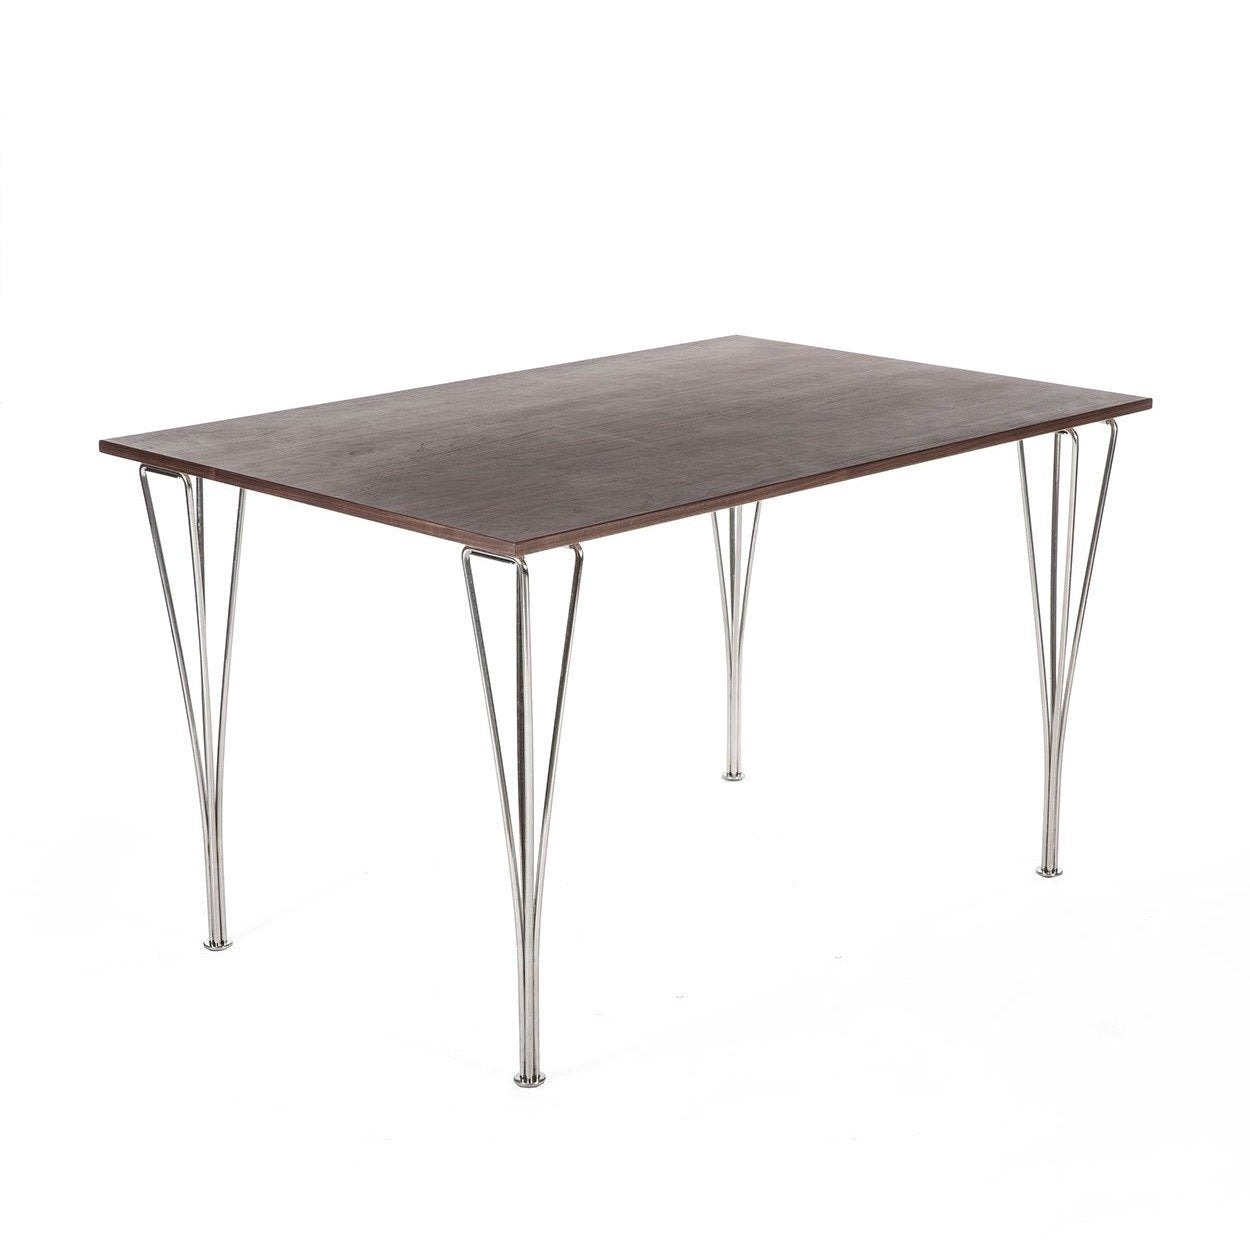 [FET9259WALNUT] Eira Dining Table